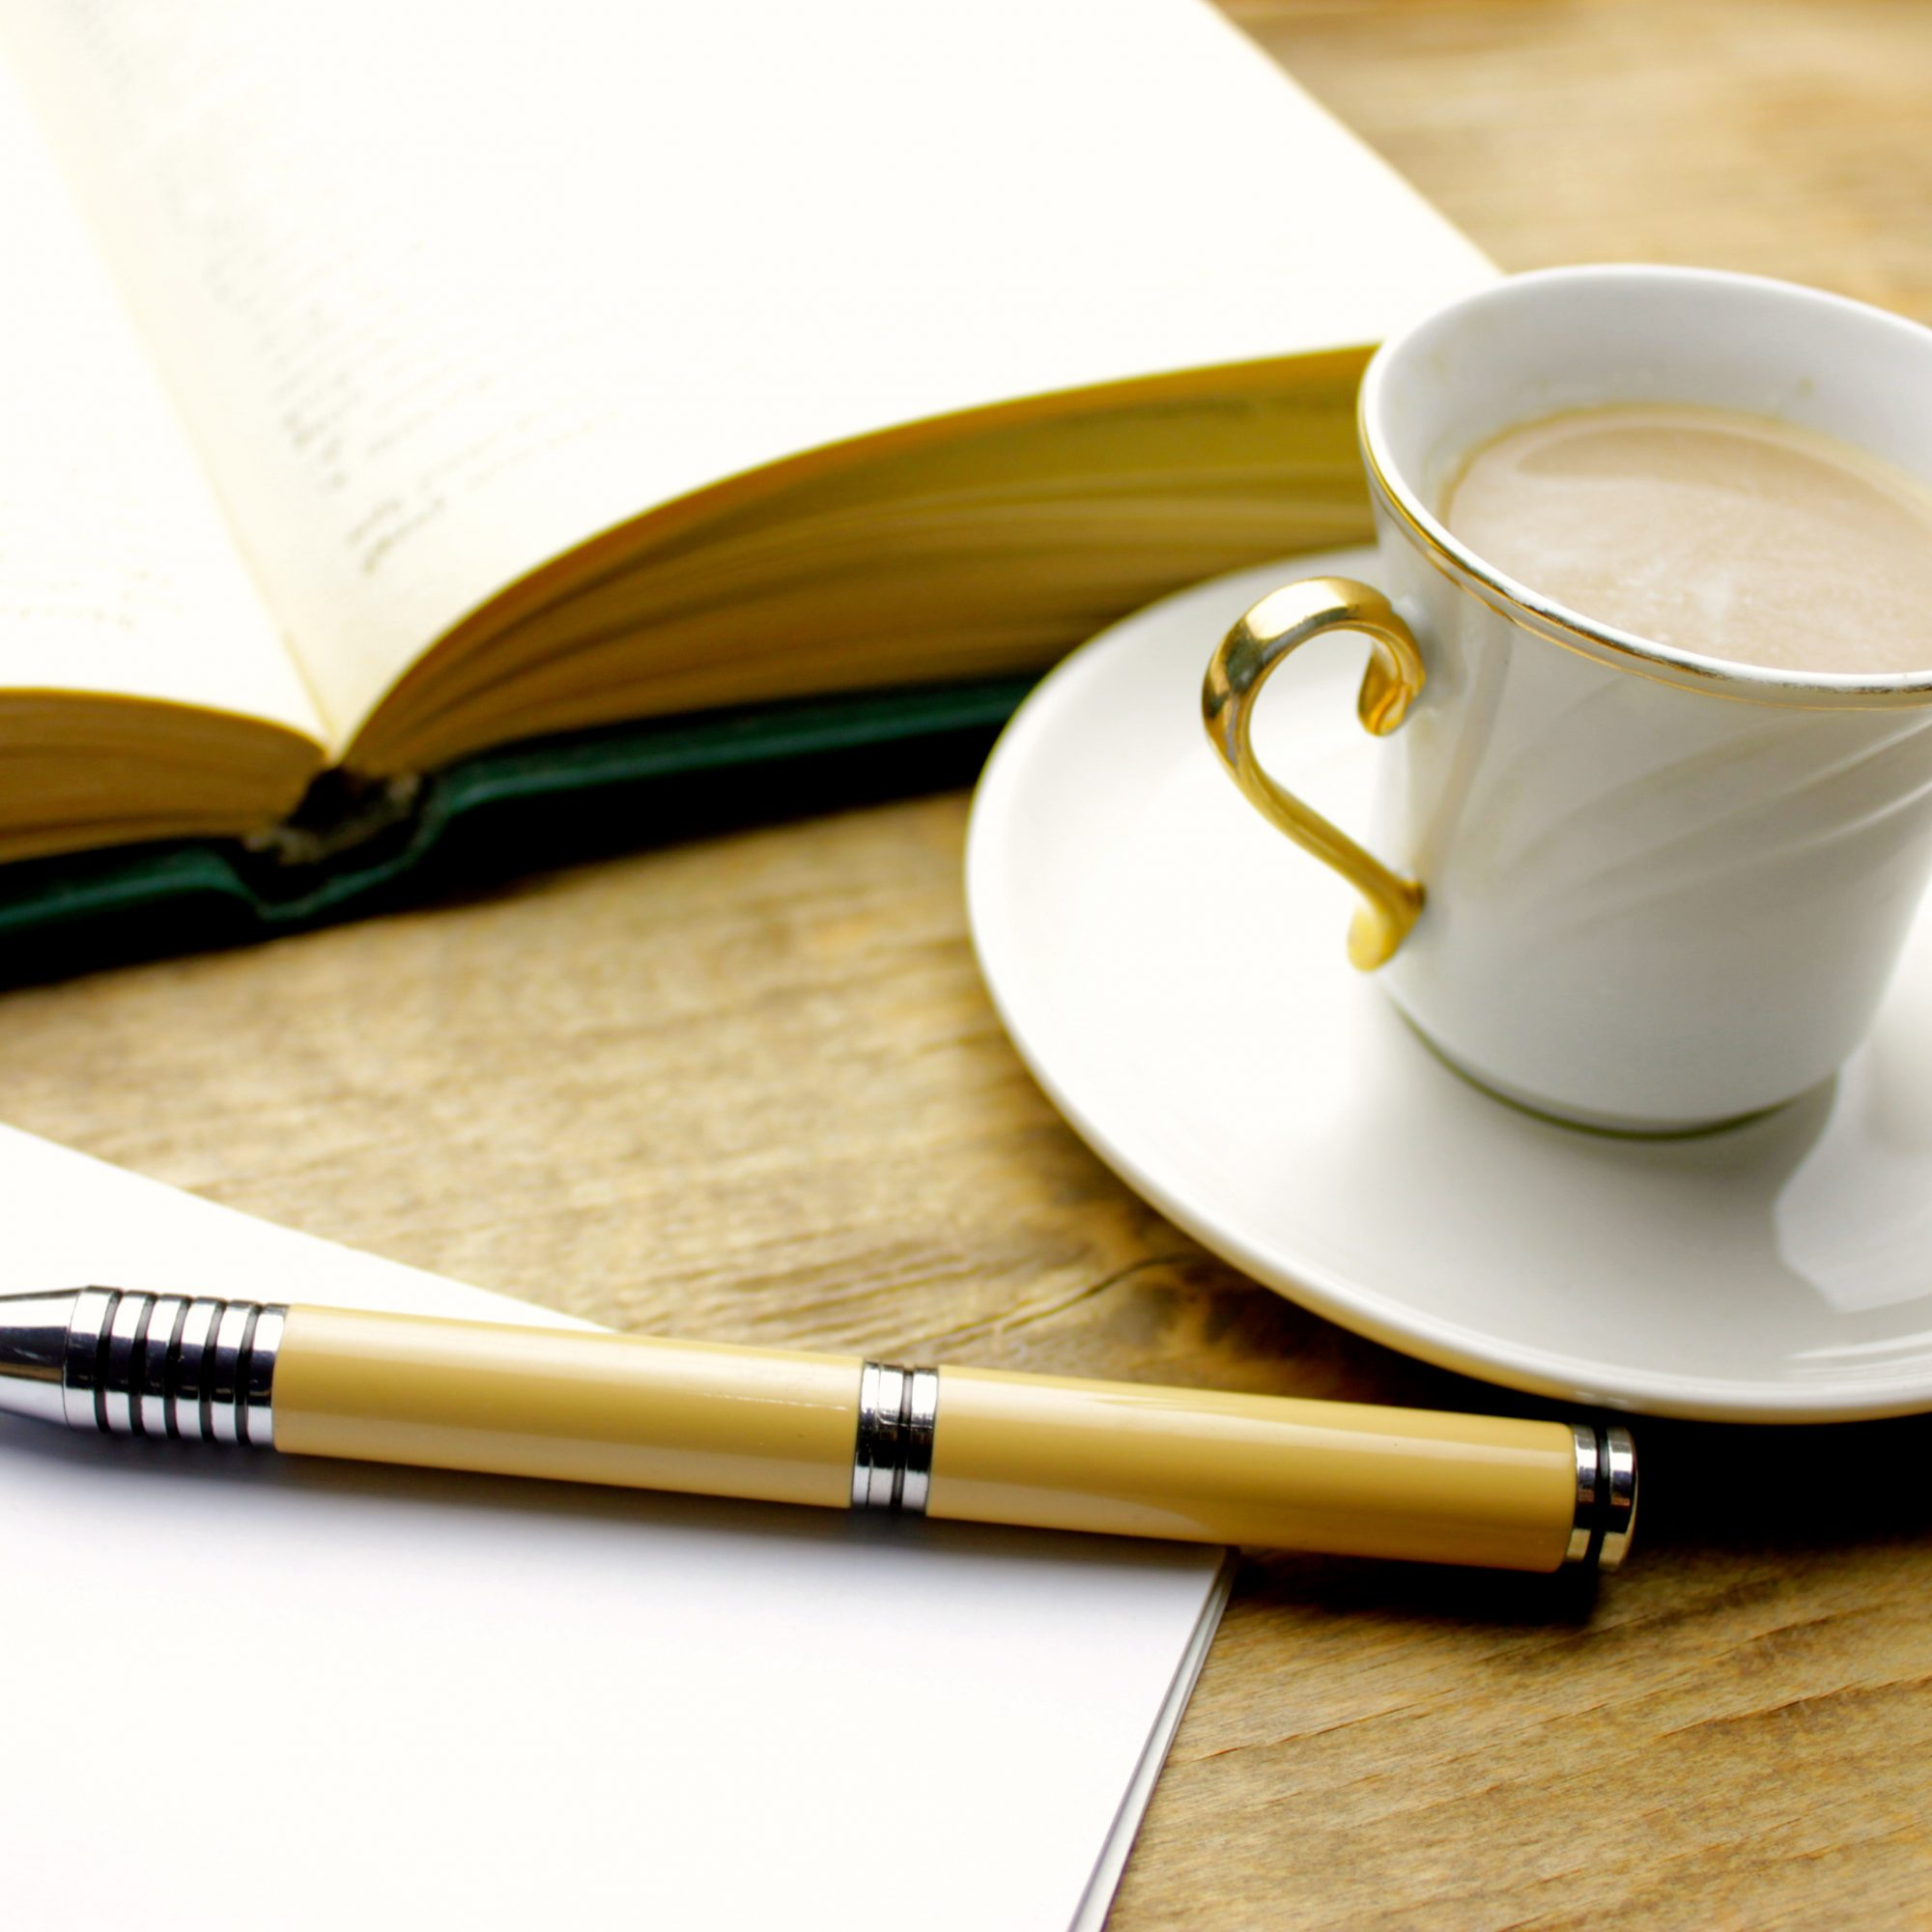 books, pens, open clean notebook with a cup of coffee